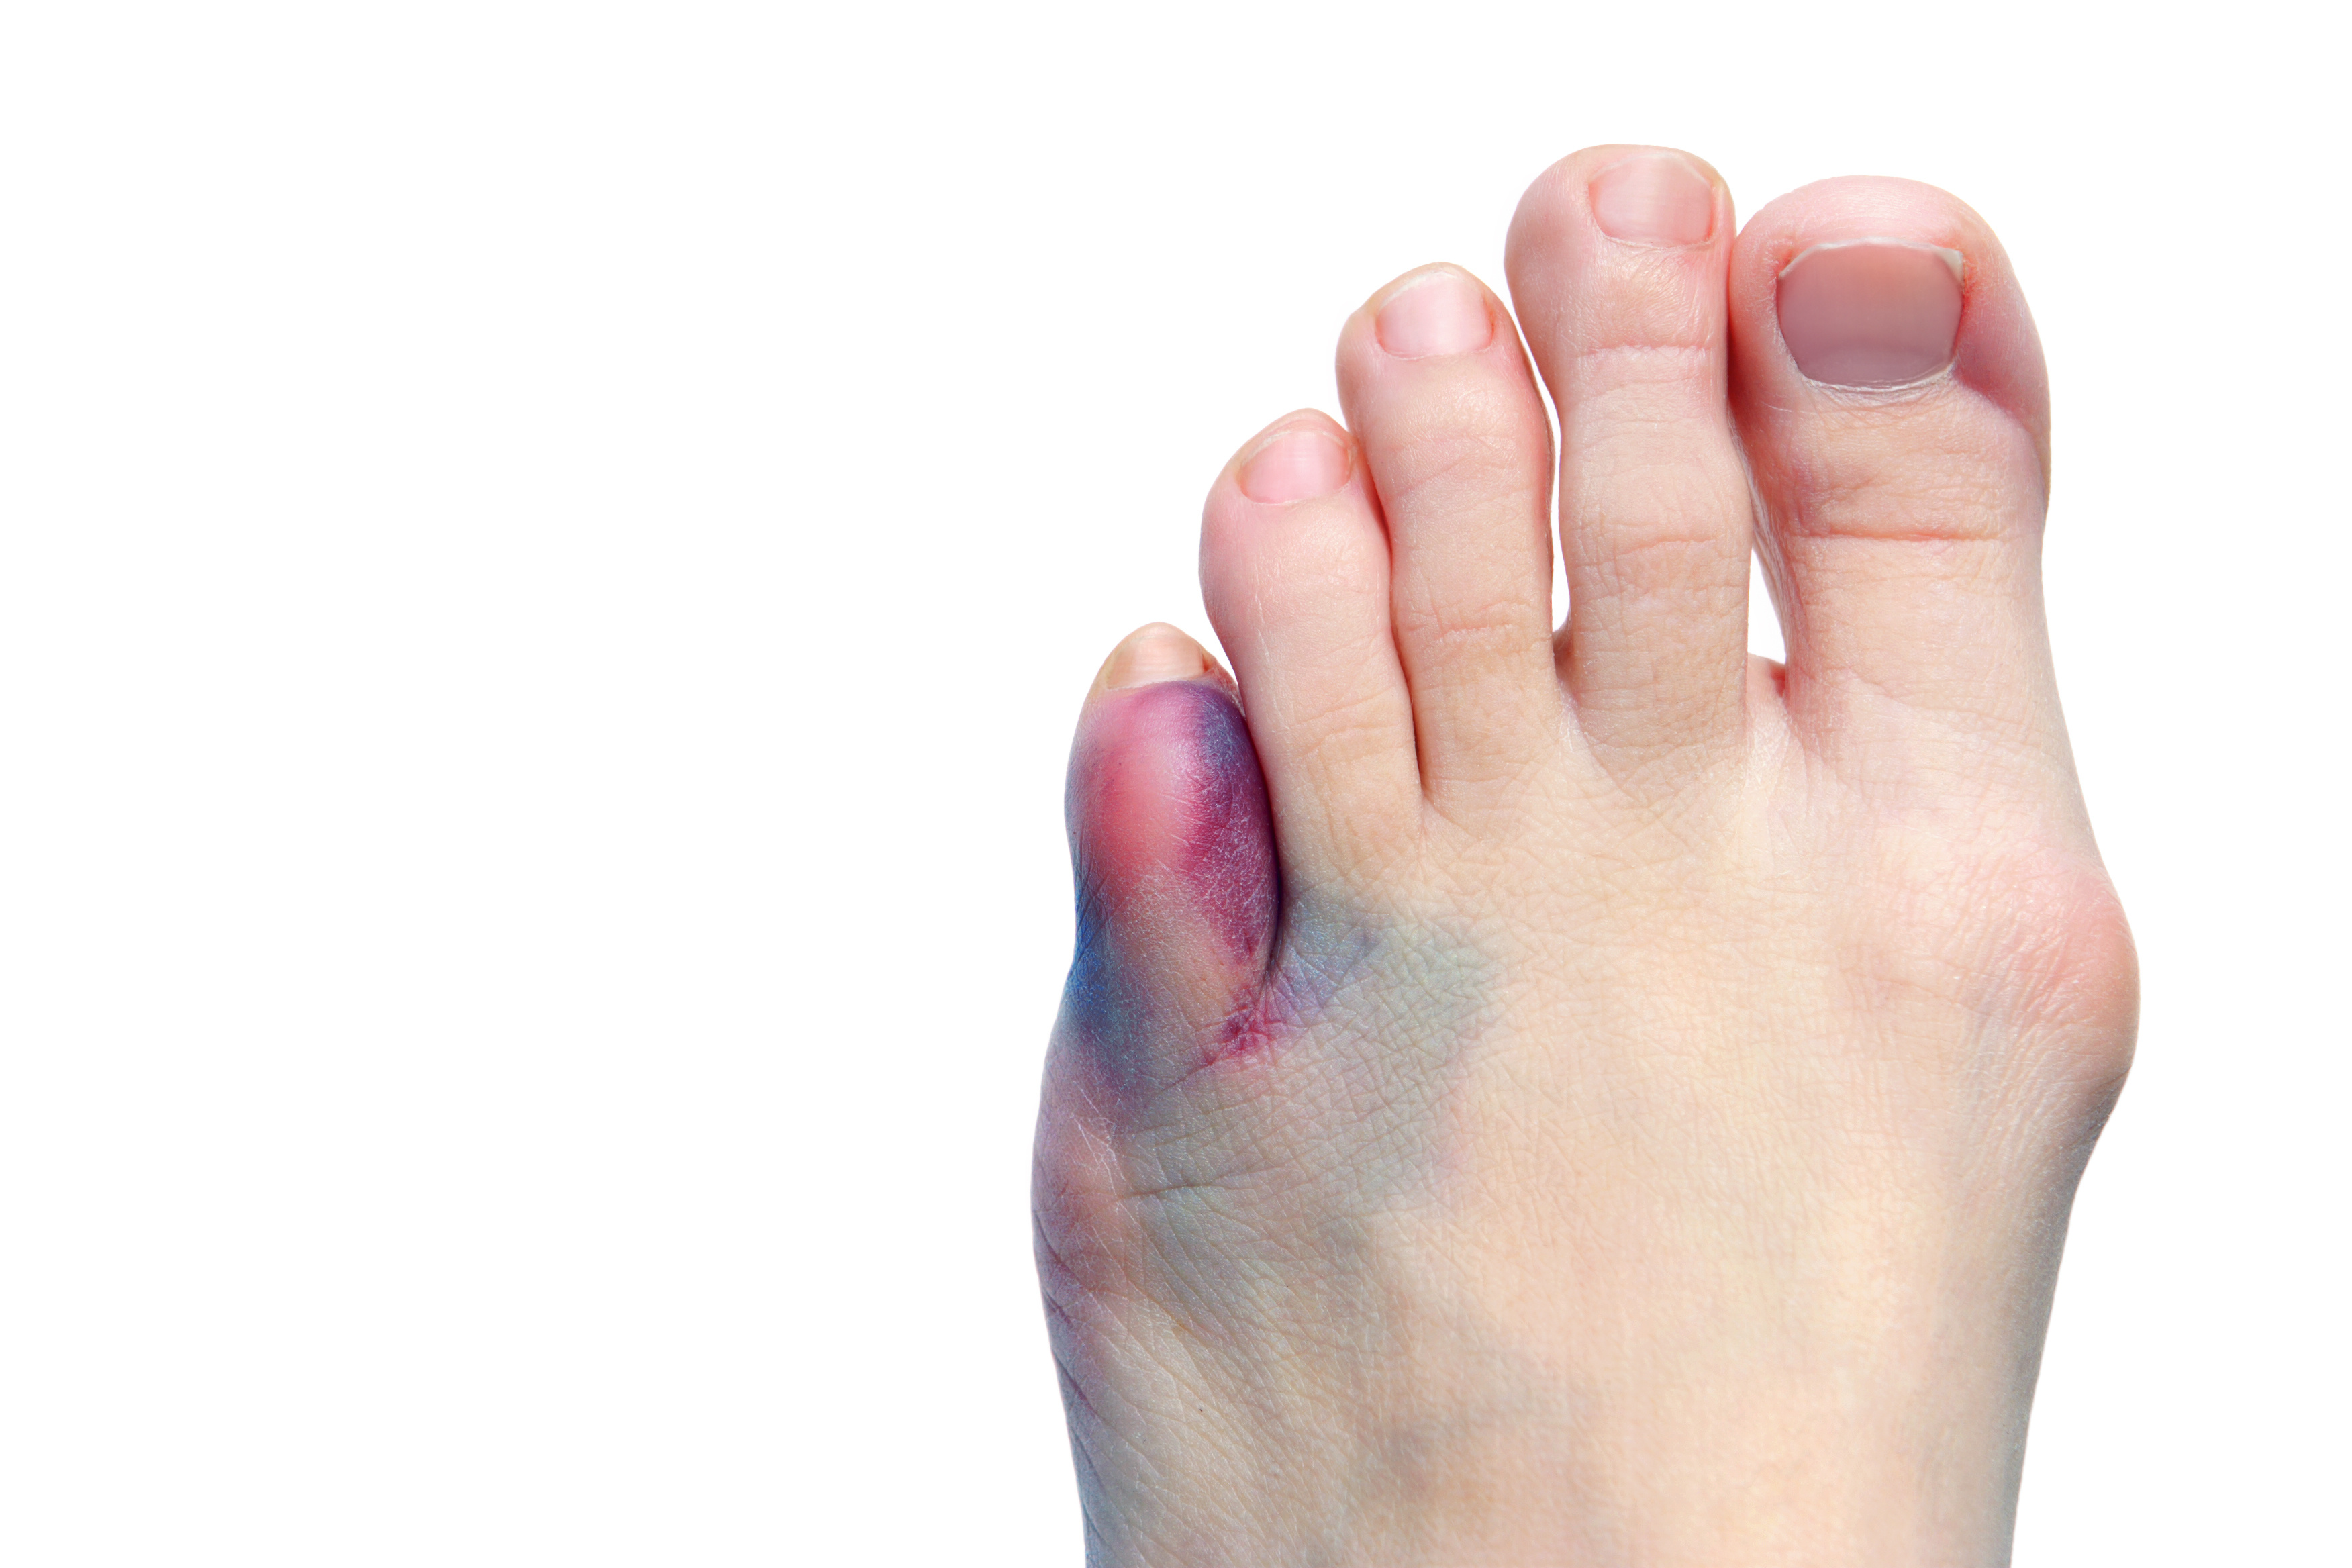 From bunions to broken toes, local foot and ankle surgeon has heard it all